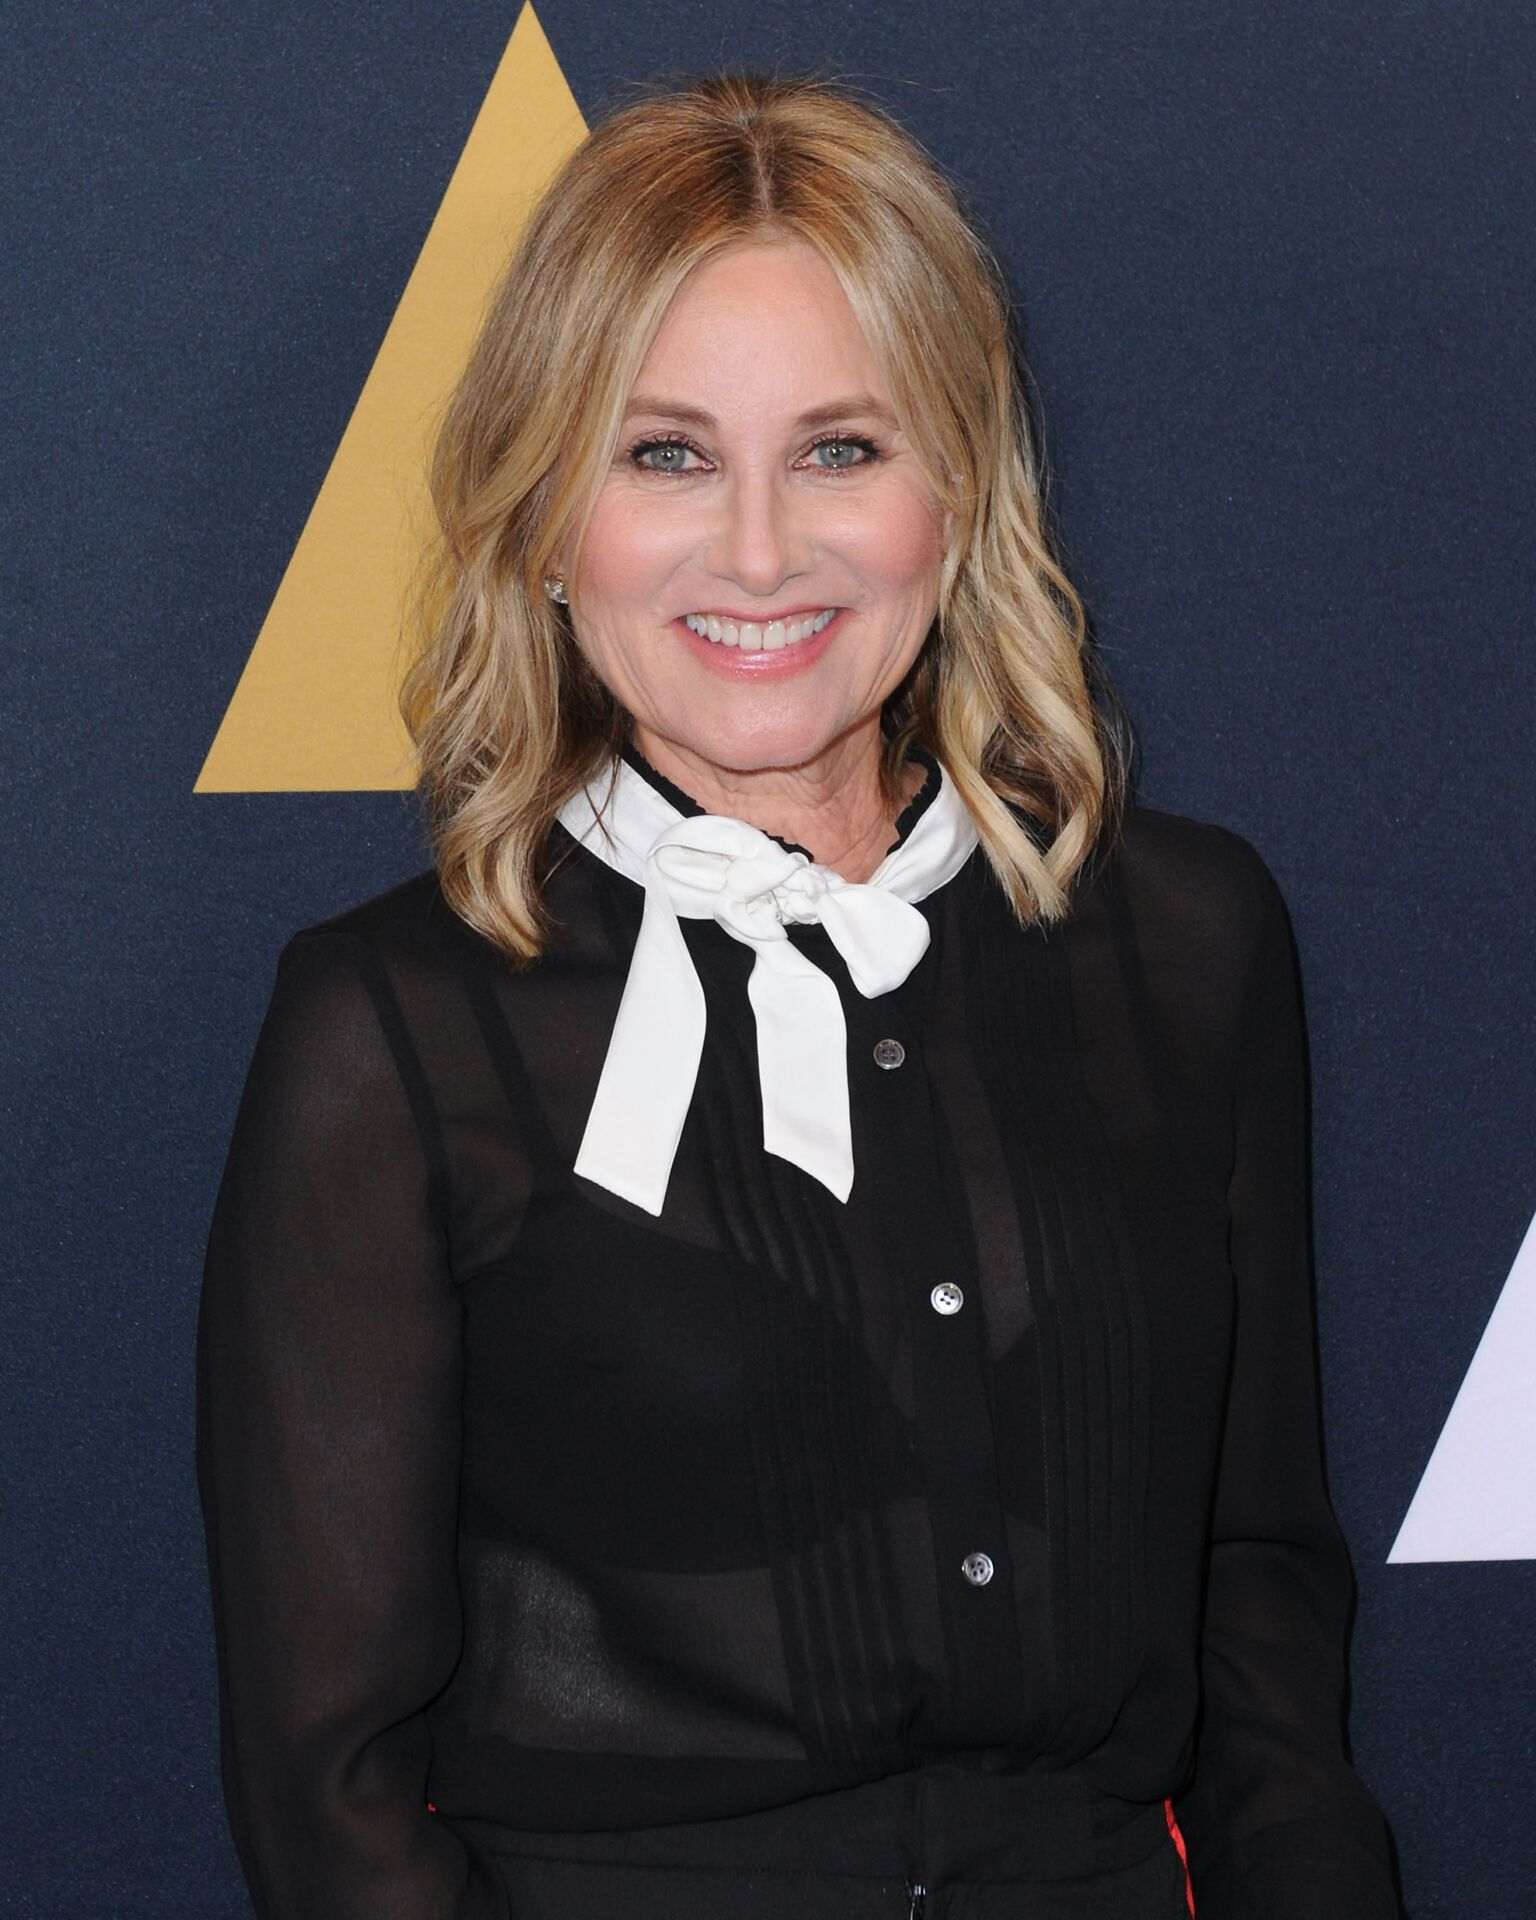 Maureen McCormick arrives at The Academy Celebrates Filmmaker Richard Donner at Samuel Goldwyn Theater | Getty Images